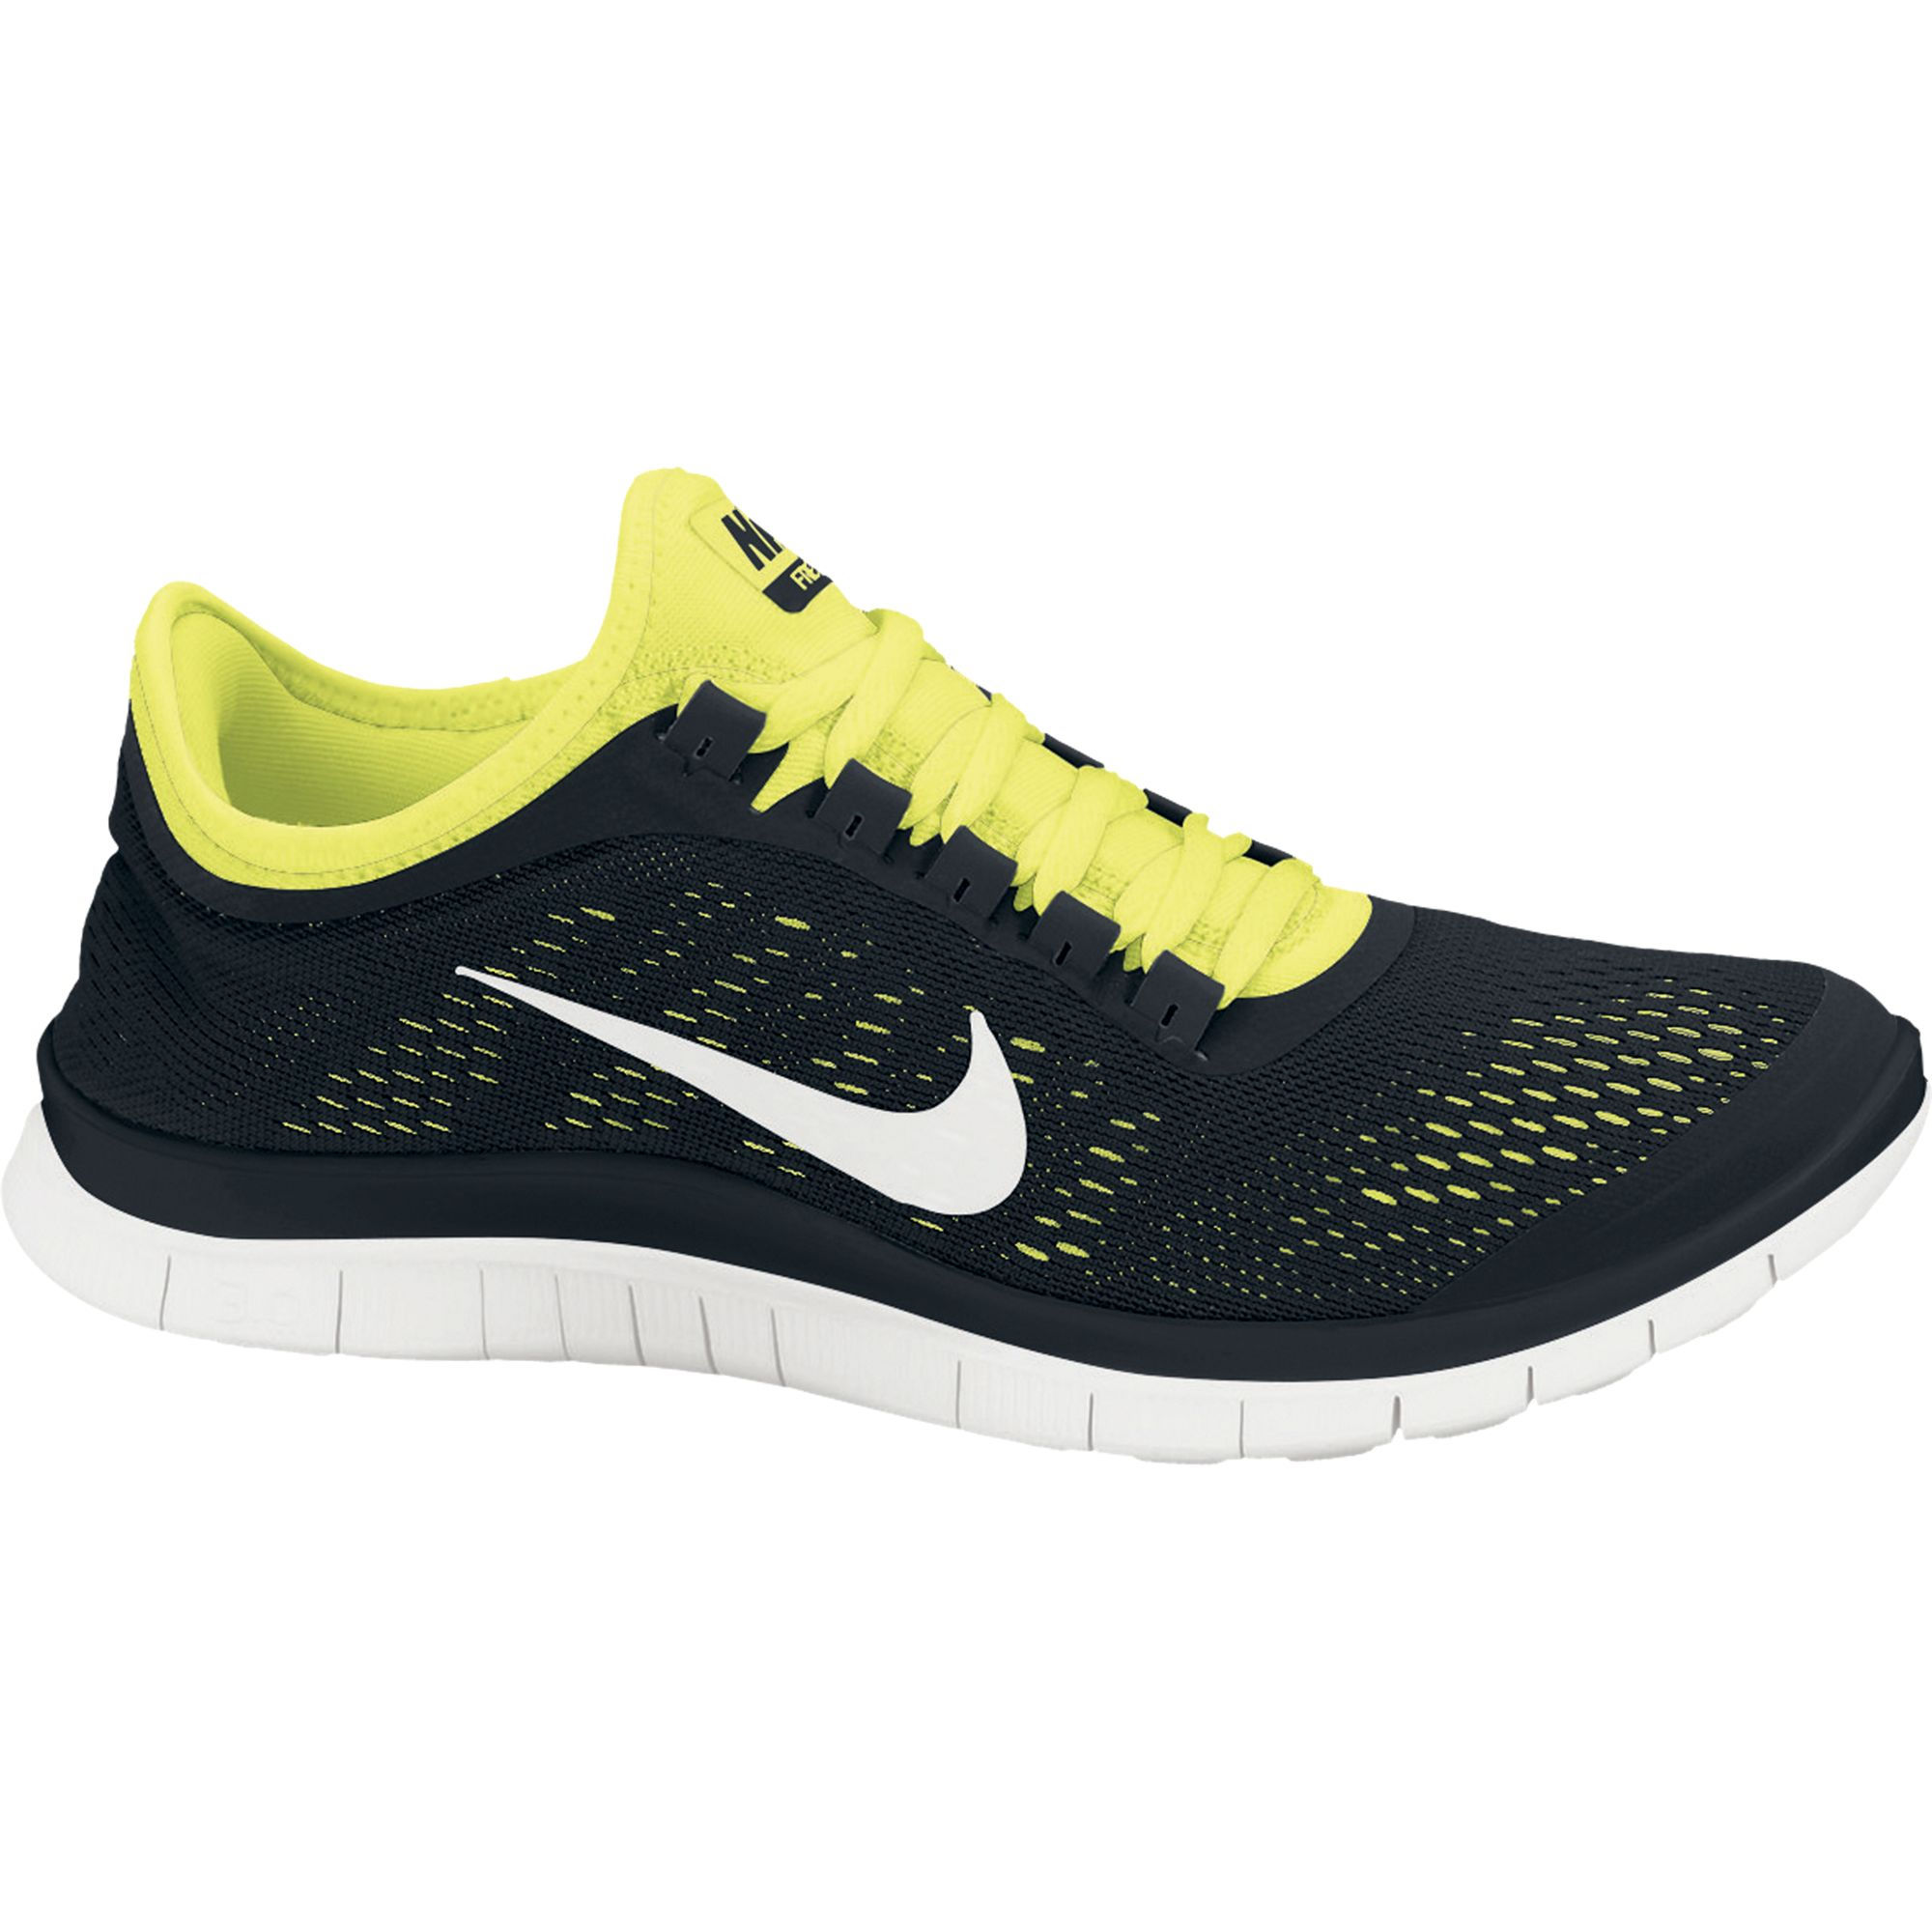 Cheap Nike Men's Roshe One Running Shoes Anaconda